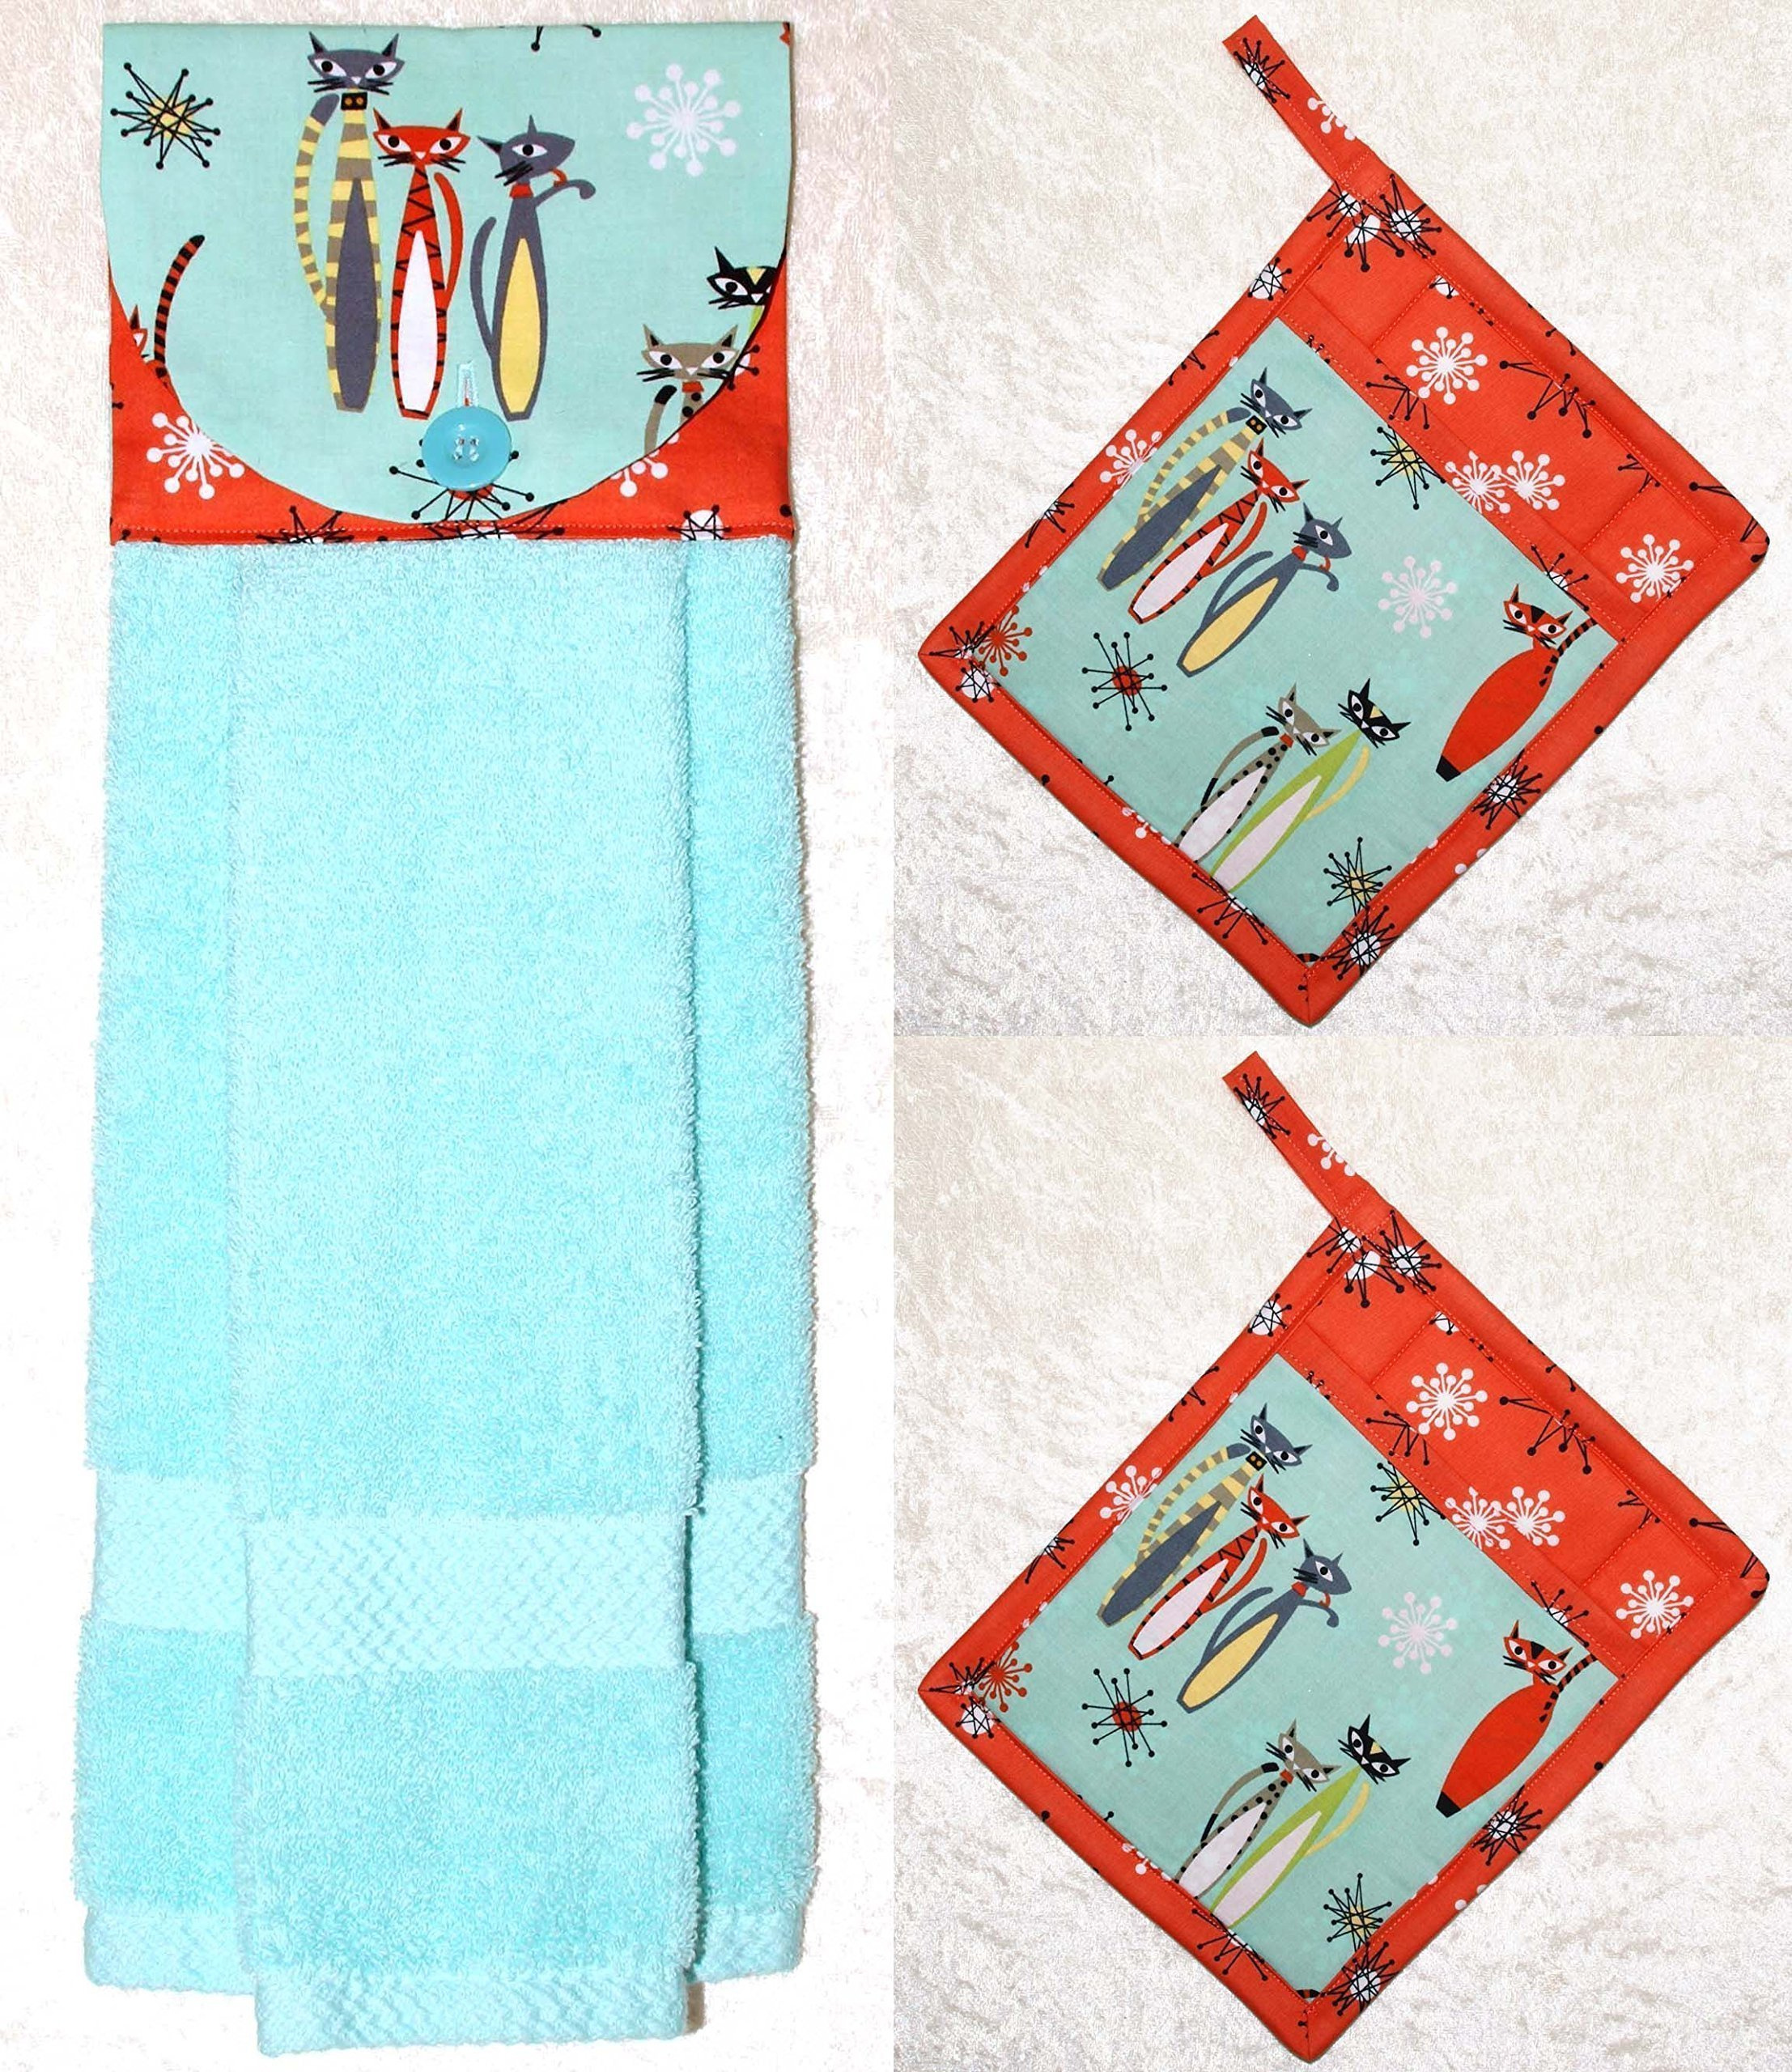 3 Piece Set - 1 Hanging Hand Towel - 2 Potholders - Retro Cats - Cosmic Starbursts - Aqua & Coral by Green Acorn Kitchen